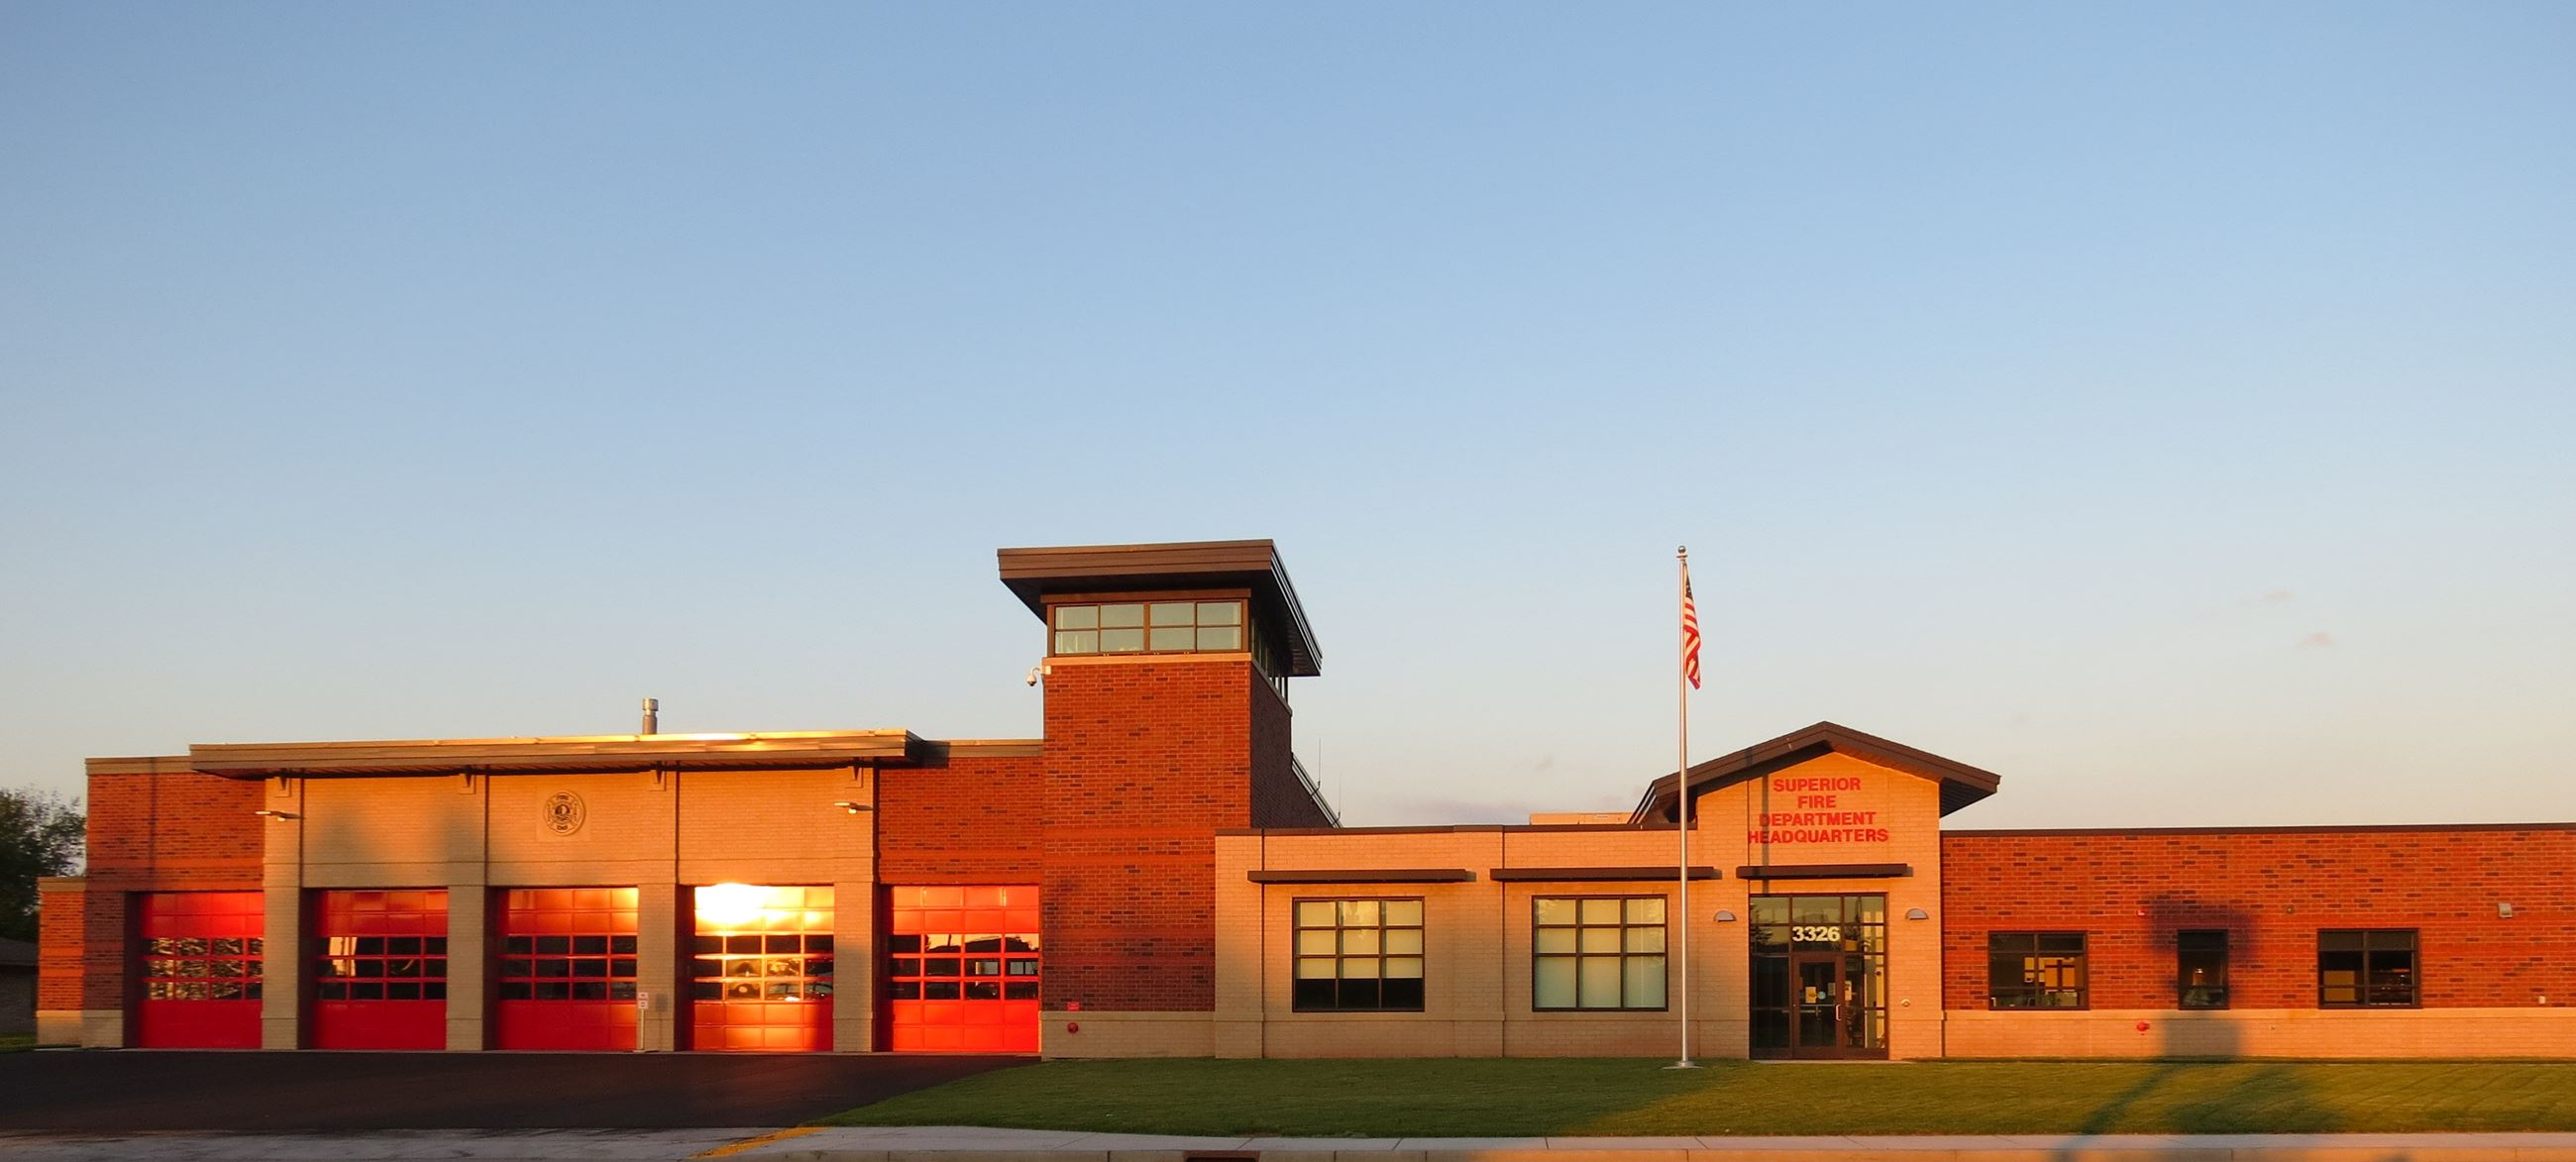 Superior Fire Department Headquarters with the sun setting on the building